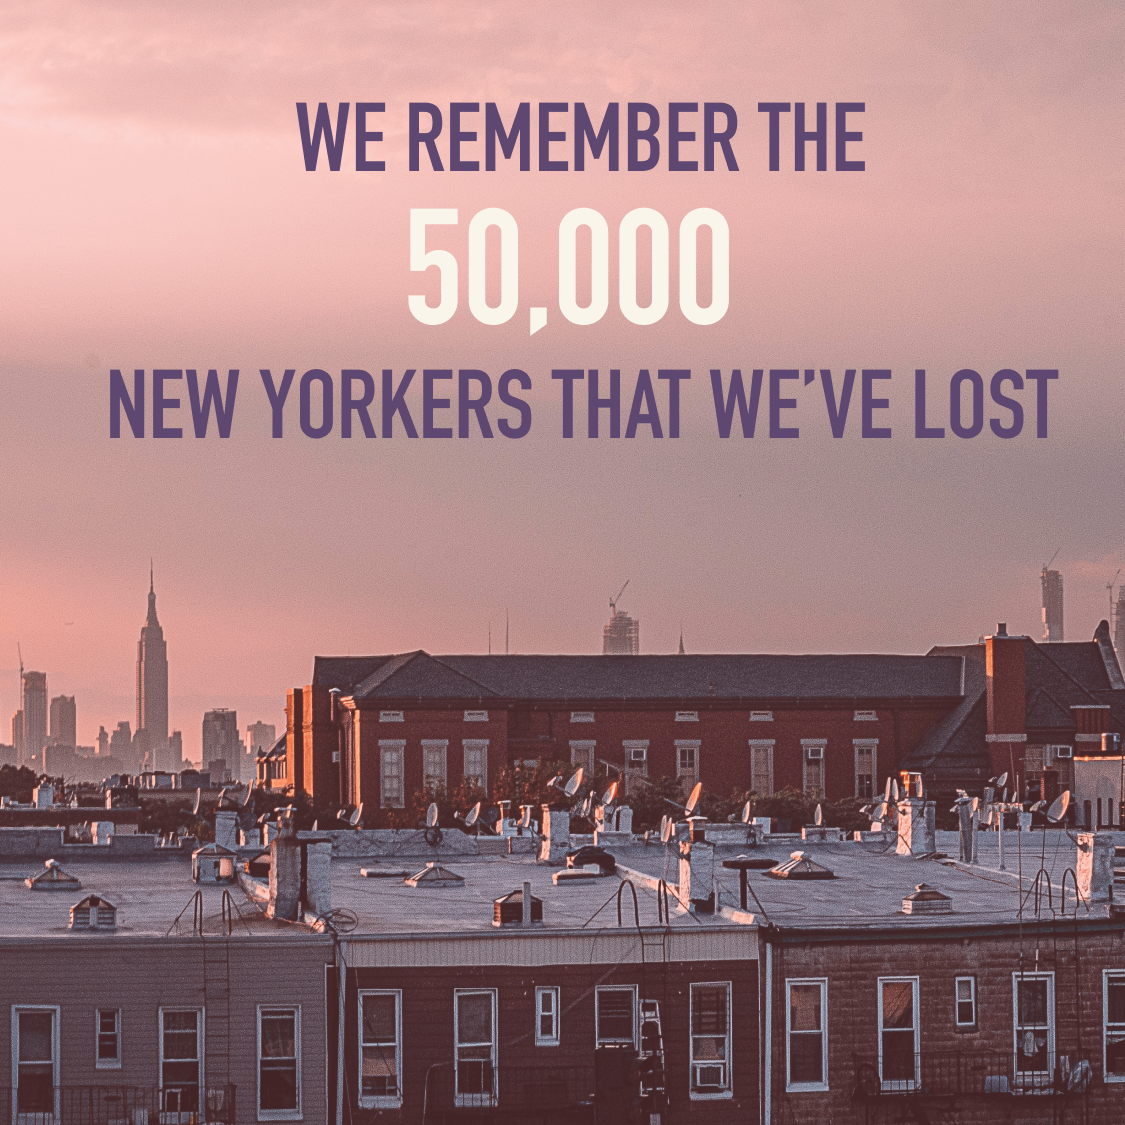 """The words """"We remember the 50,000 New Yorkers that we've lost"""" with a sunset over New York City buildings"""